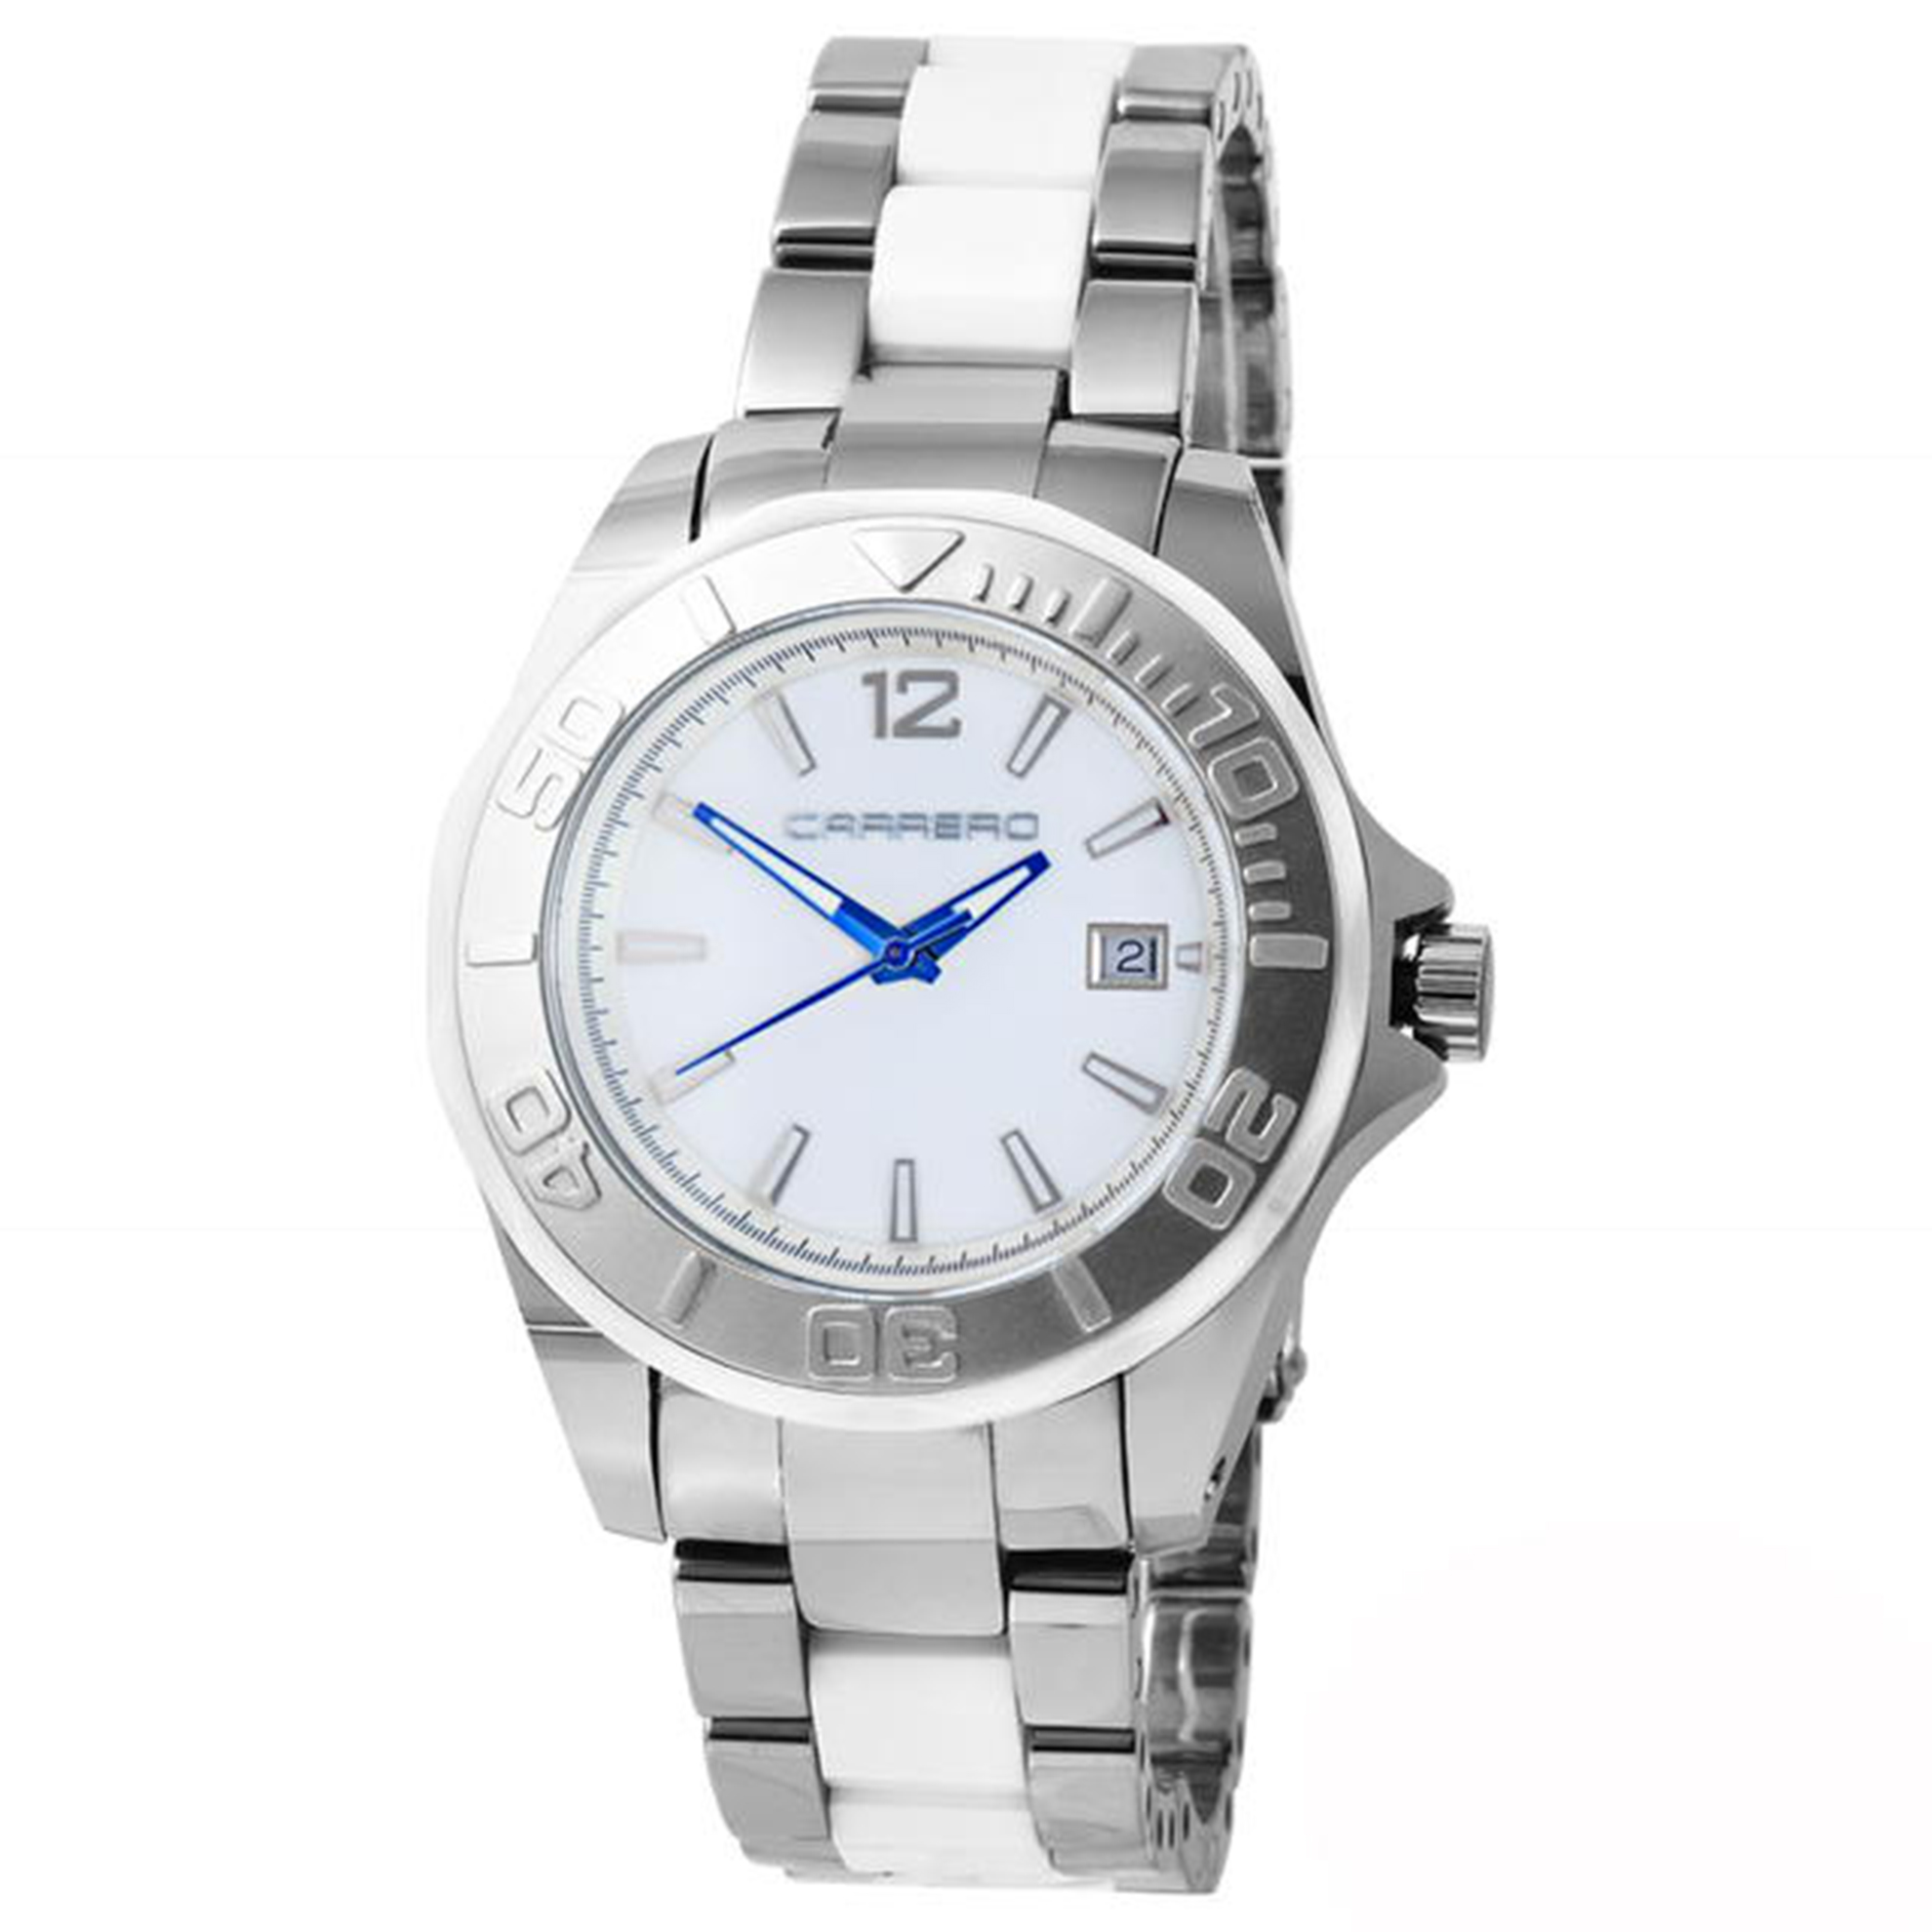 Carrero C012-B Carrero Special Edition Tungsten and Ceramic Diver Two-Tone White Dial